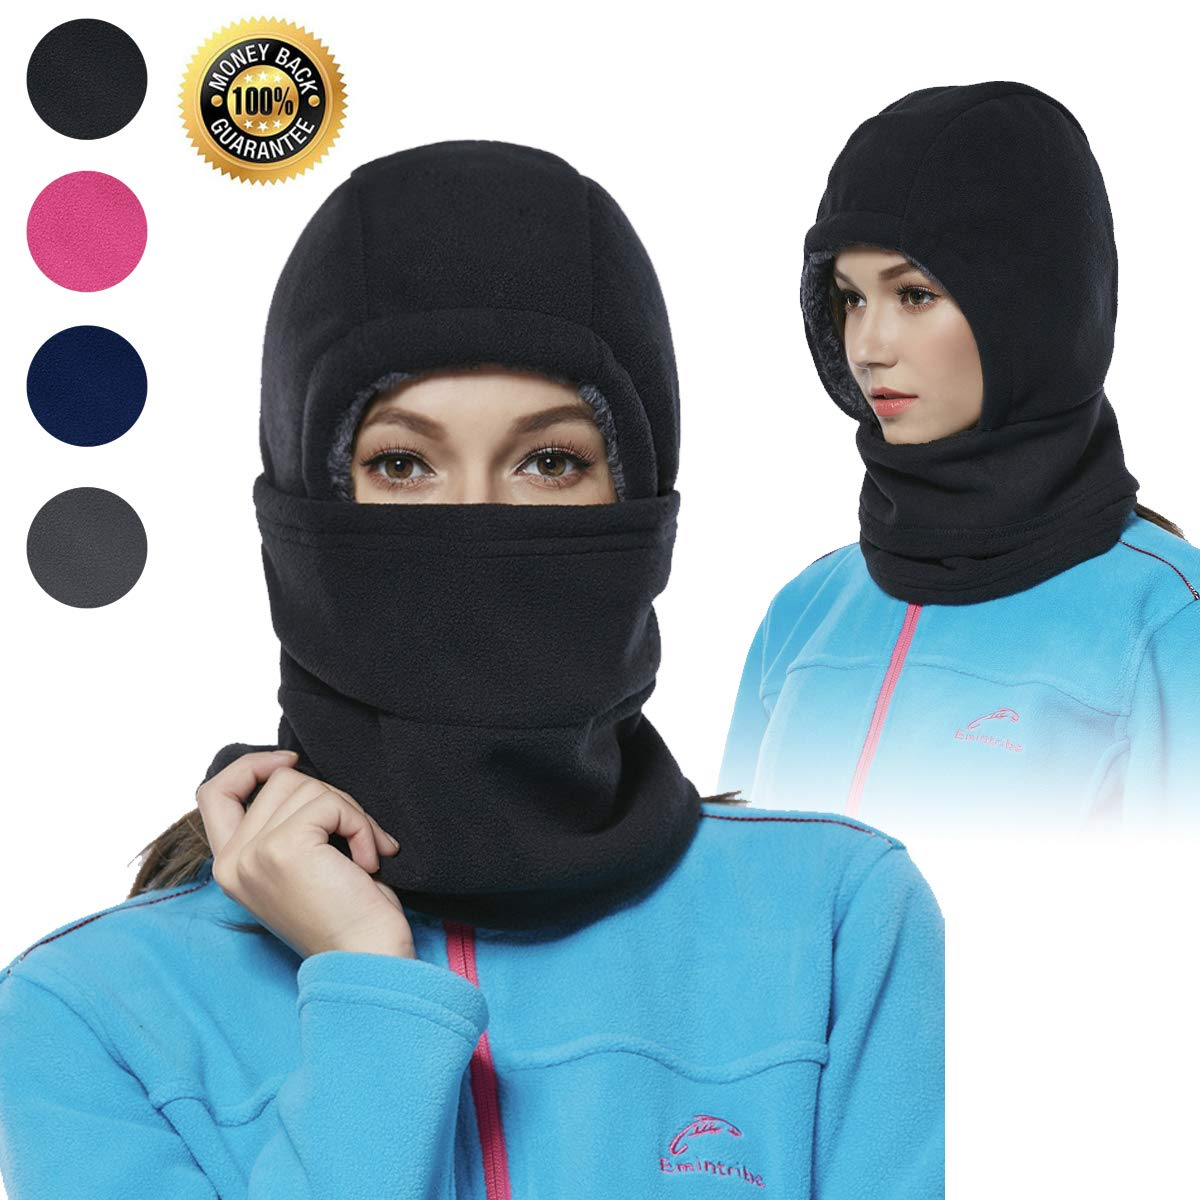 Details about Balaclava Fleece Hood for Women Kids Thick Ski Face Mask Cold  Weather Winter 44b7290fe